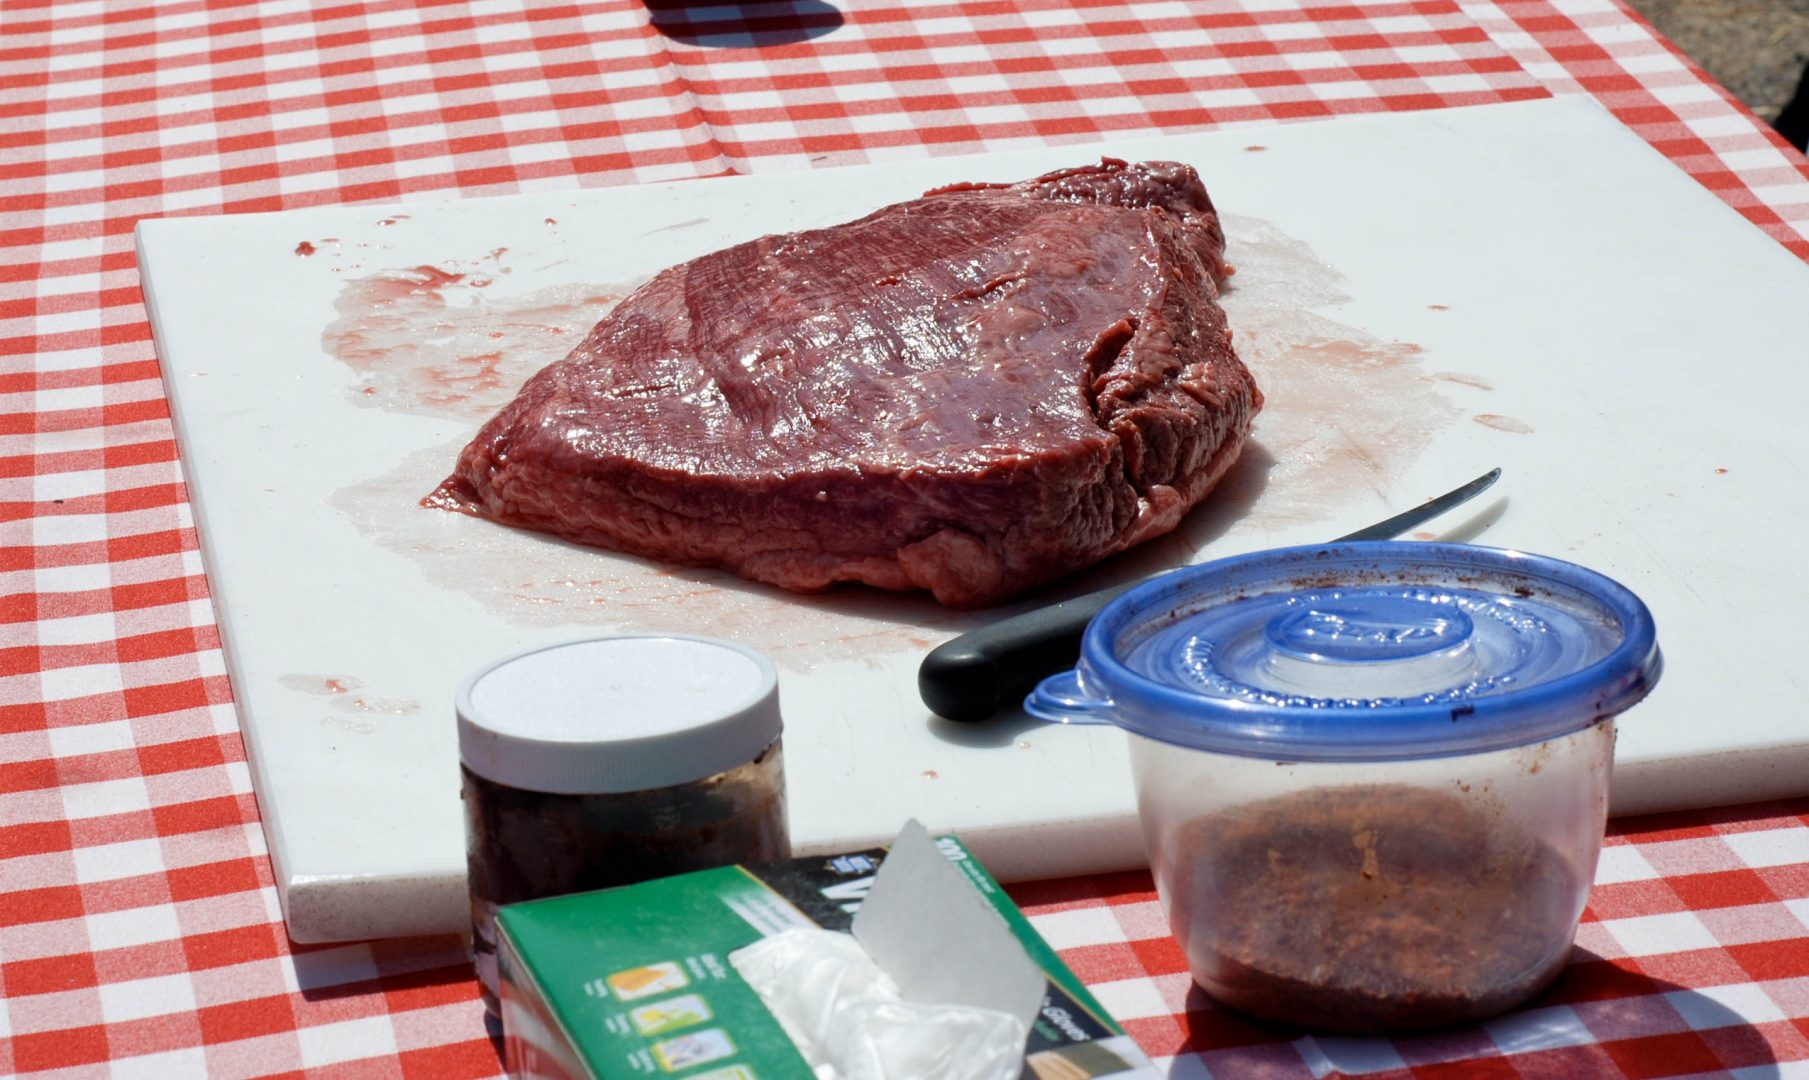 Kingsford University Part 1: Chris Lilly's Barbecued Beef Brisket Recipe and the Mullets of Nascar